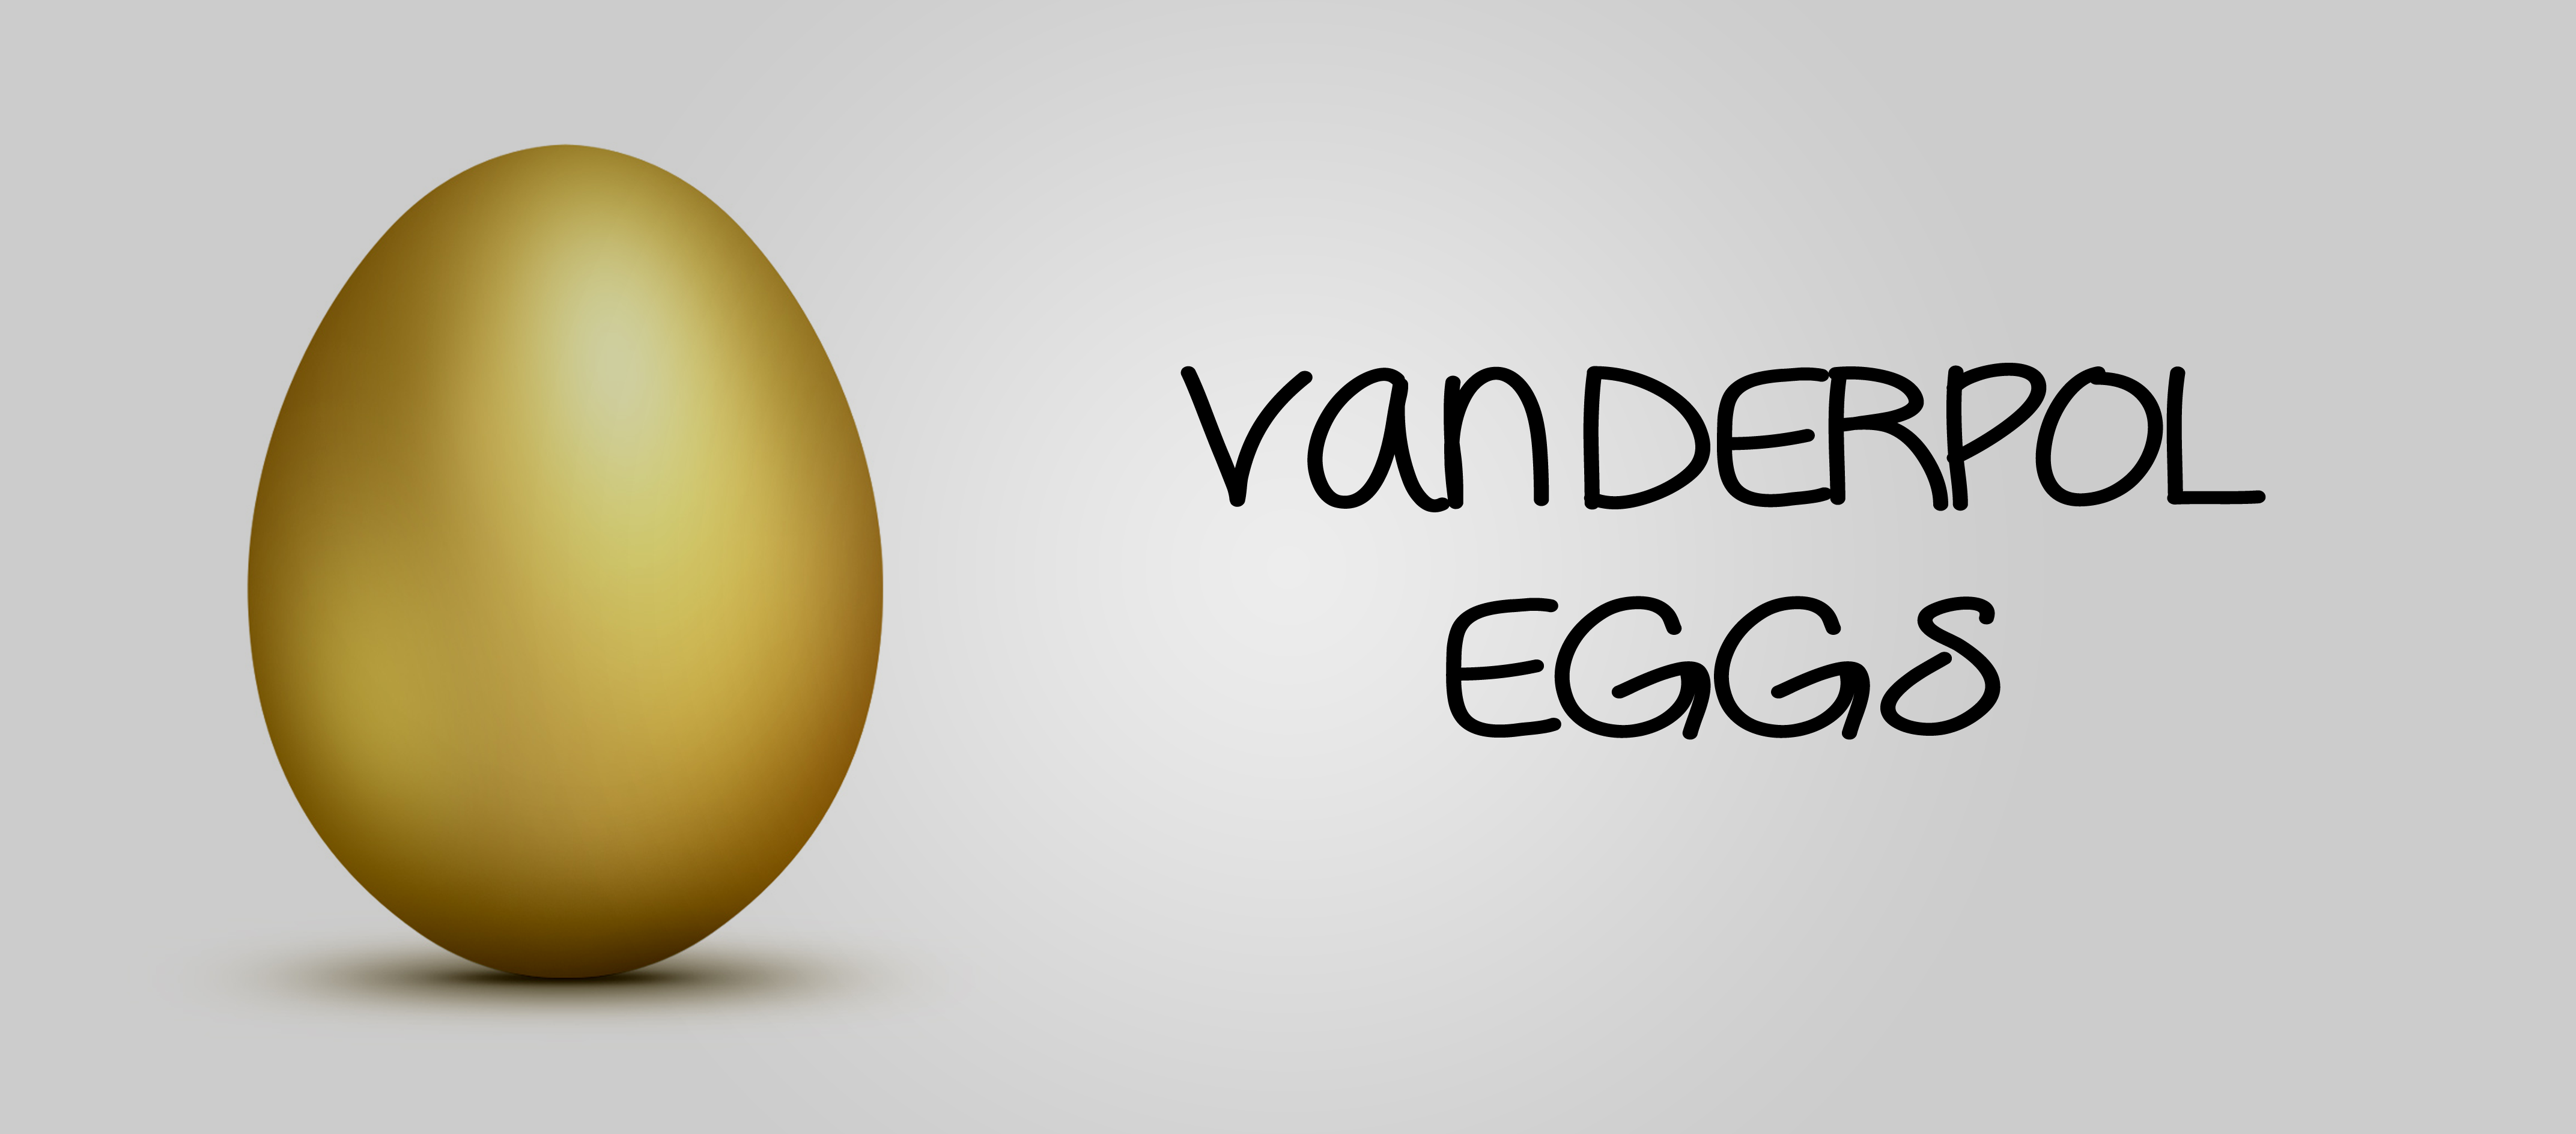 Logo Design by Moez Oueslati - Entry No. 60 in the Logo Design Contest Creative Logo Design for Vanderpol Food Group.